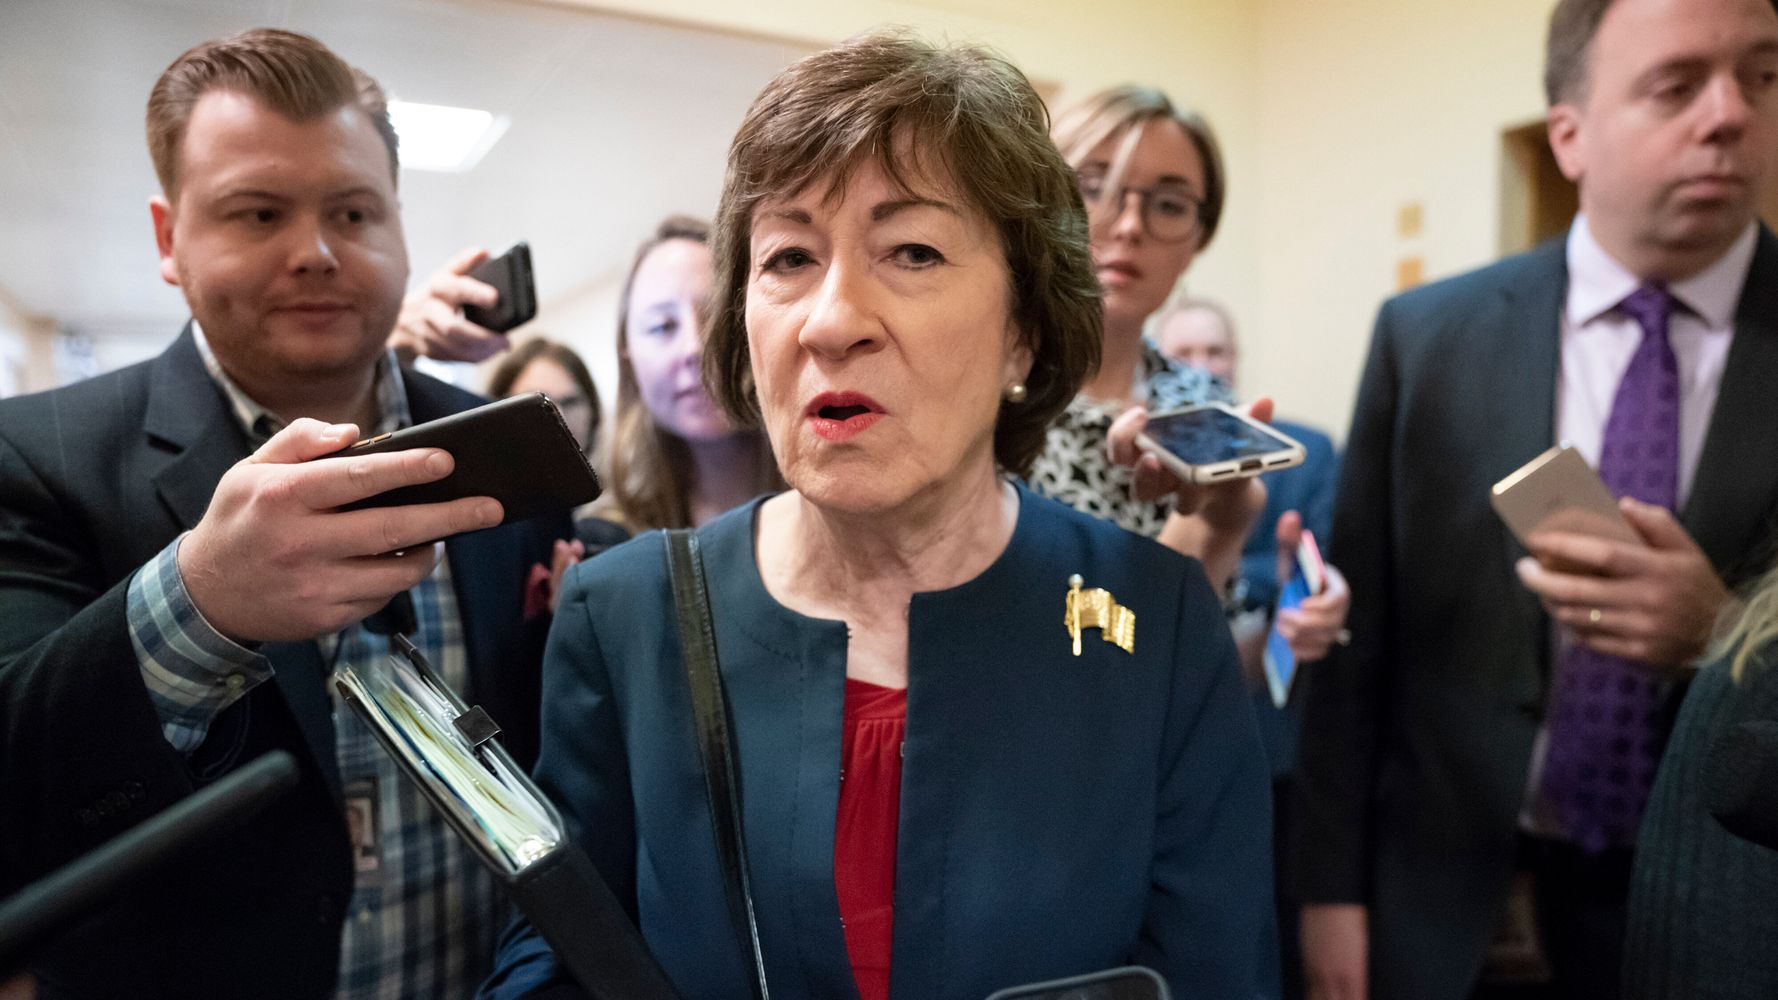 Westlake Legal Group 5e0b7f8425000079bad3181f GOP Sen. Susan Collins Sides With Mitch McConnell On Impeachment Trial